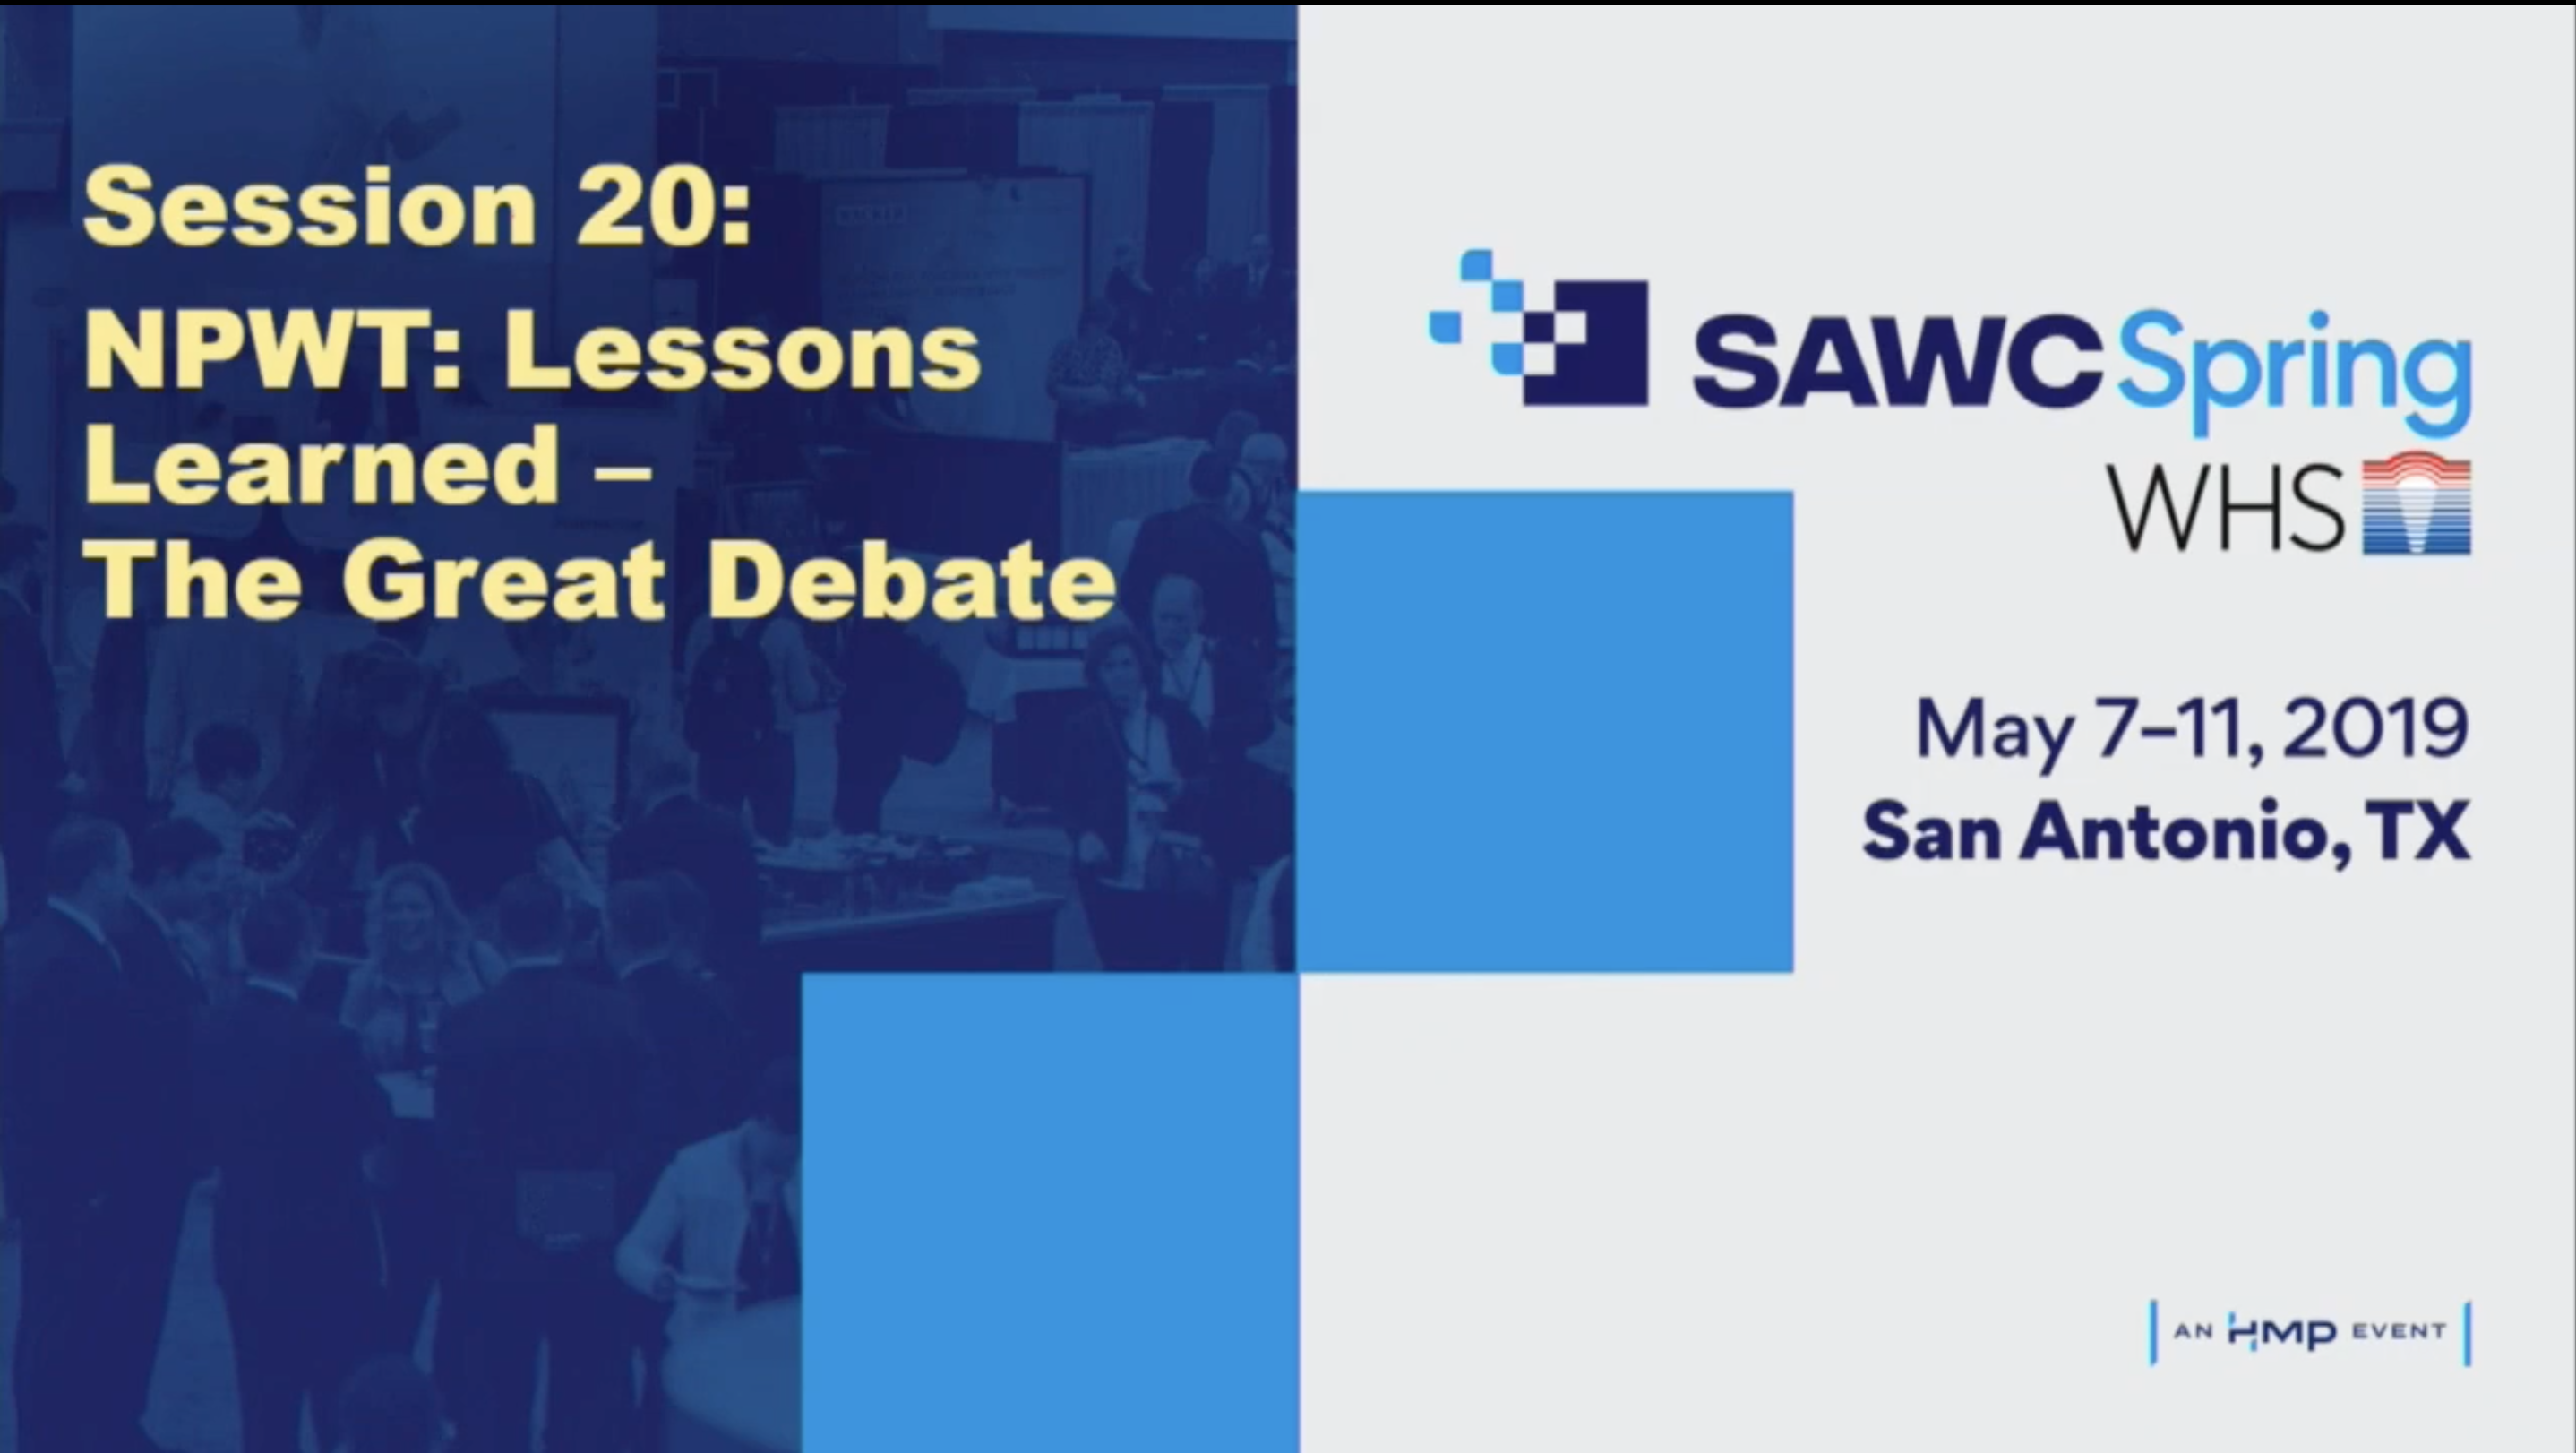 NPWT: Lessons Learned - The Great Debate | SAWC Spring 2019